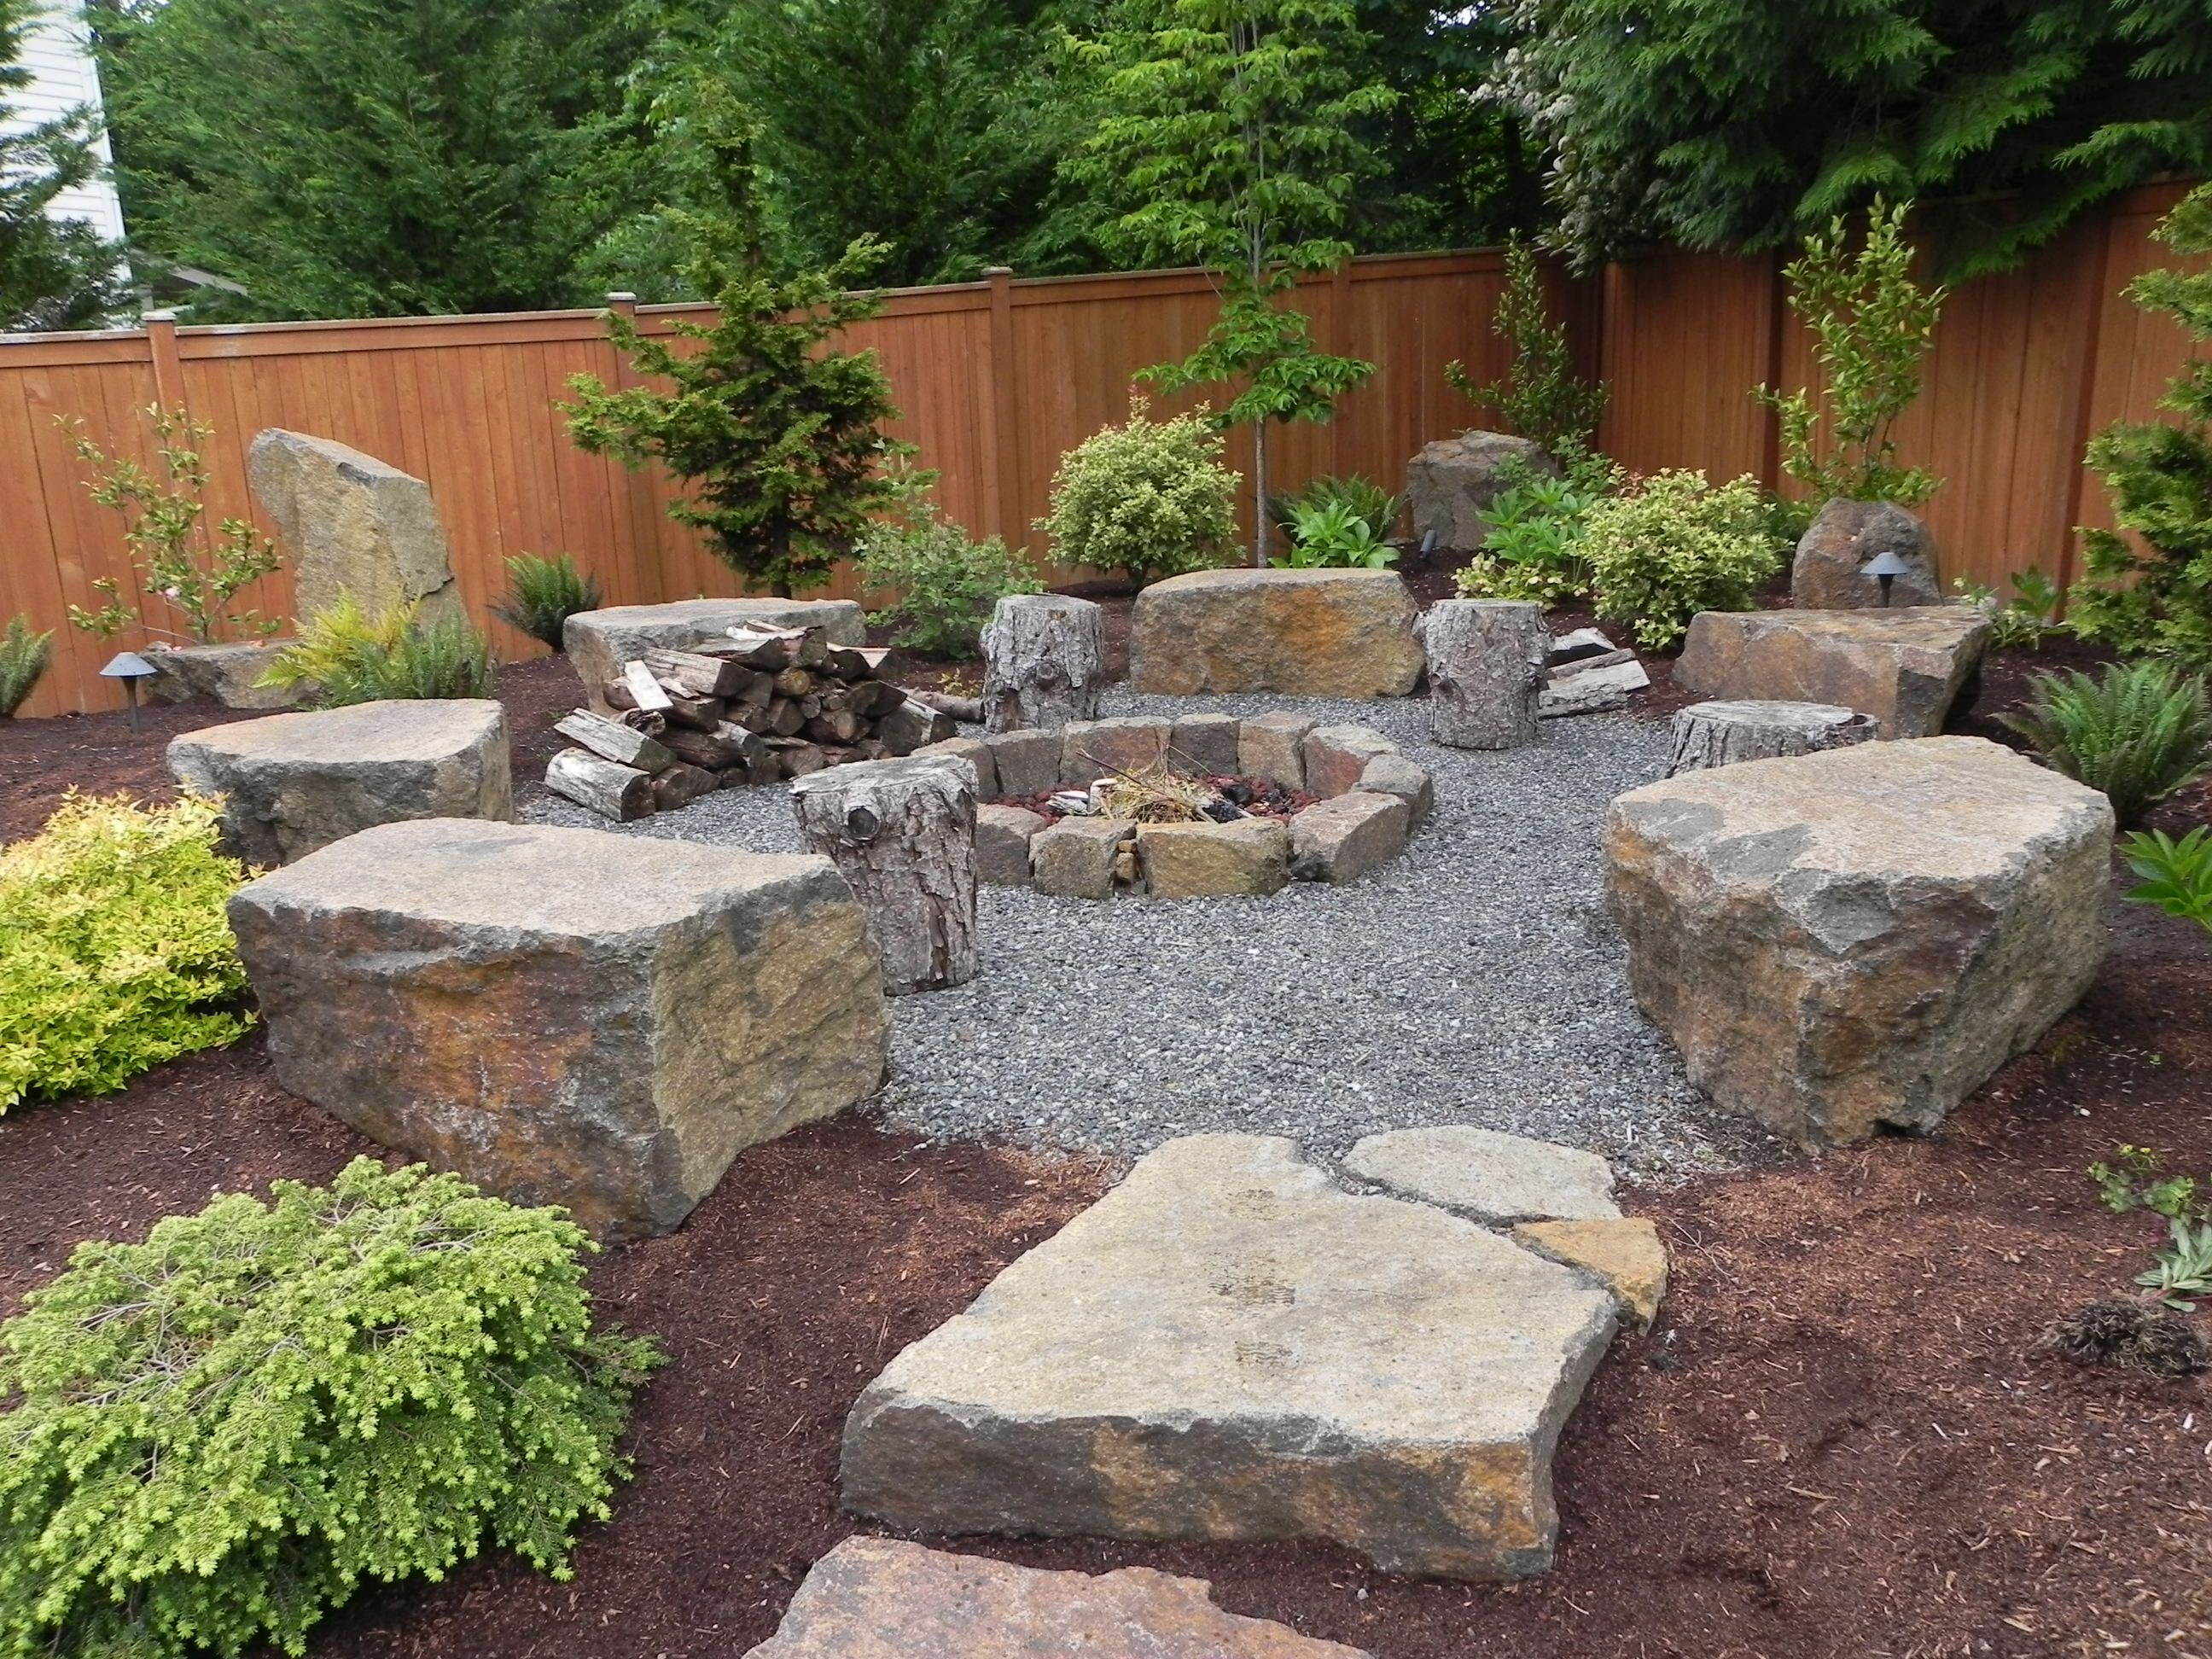 I donut like the actual fire pit but what about the large boulders